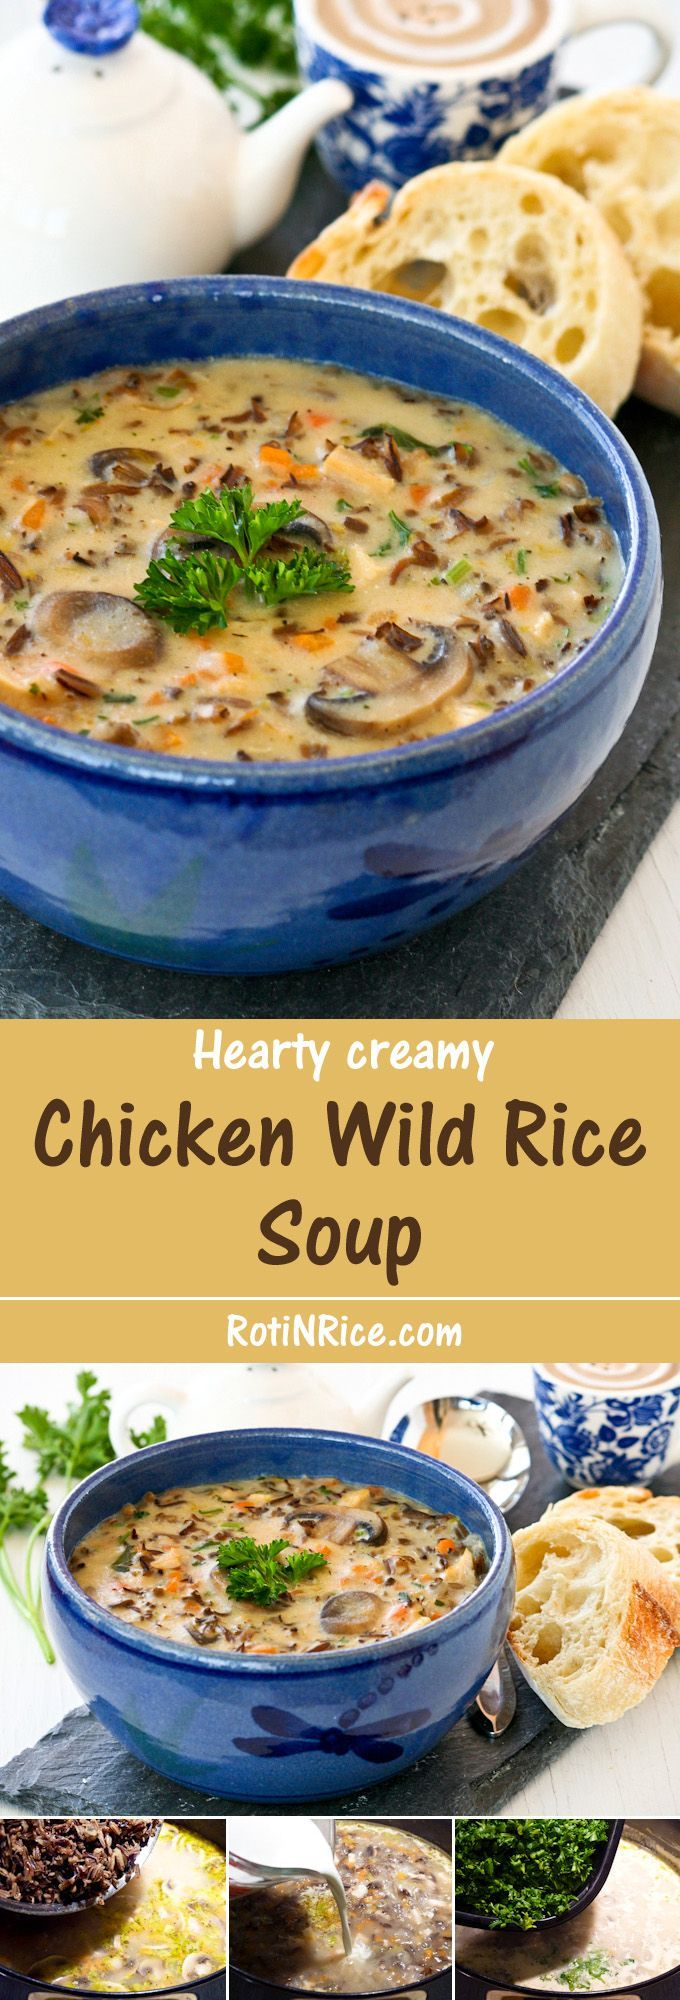 coach swingpack This Chicken Wild Rice Soup is a hearty creamy soup made with cooked chicken  nutty wild rice  and mushrooms  It is a bowl of comfort any time of the year    Food to gladden the heart at RotiNRice com